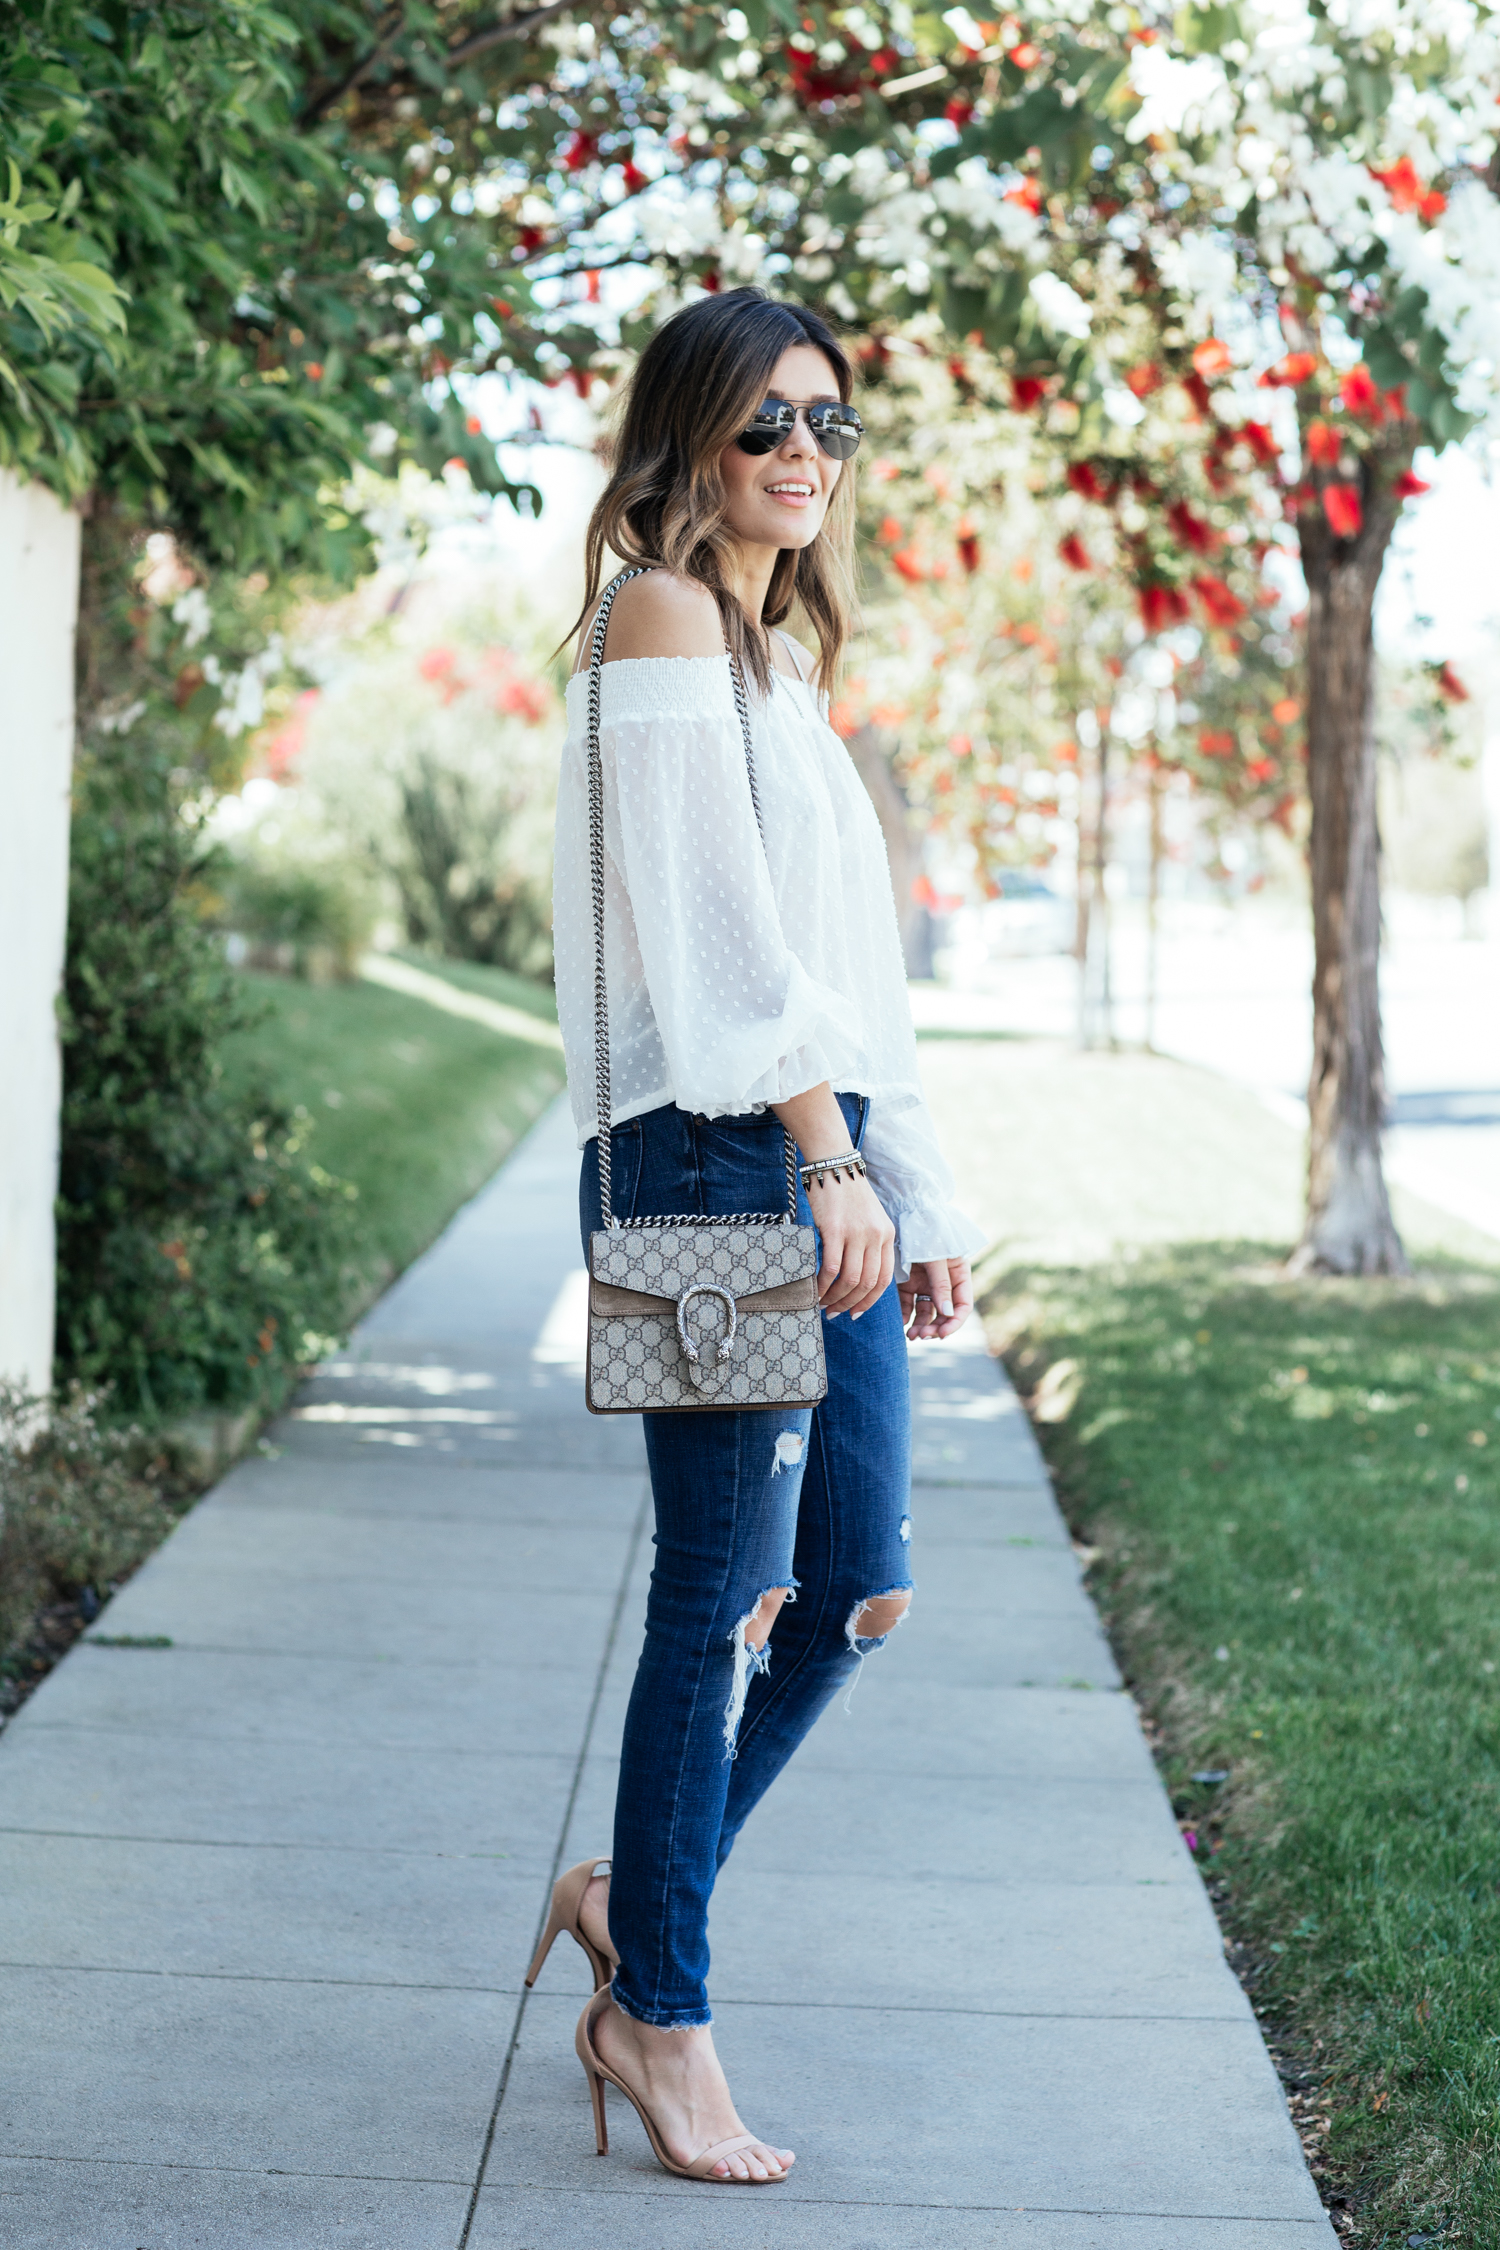 Denim and nude heels look